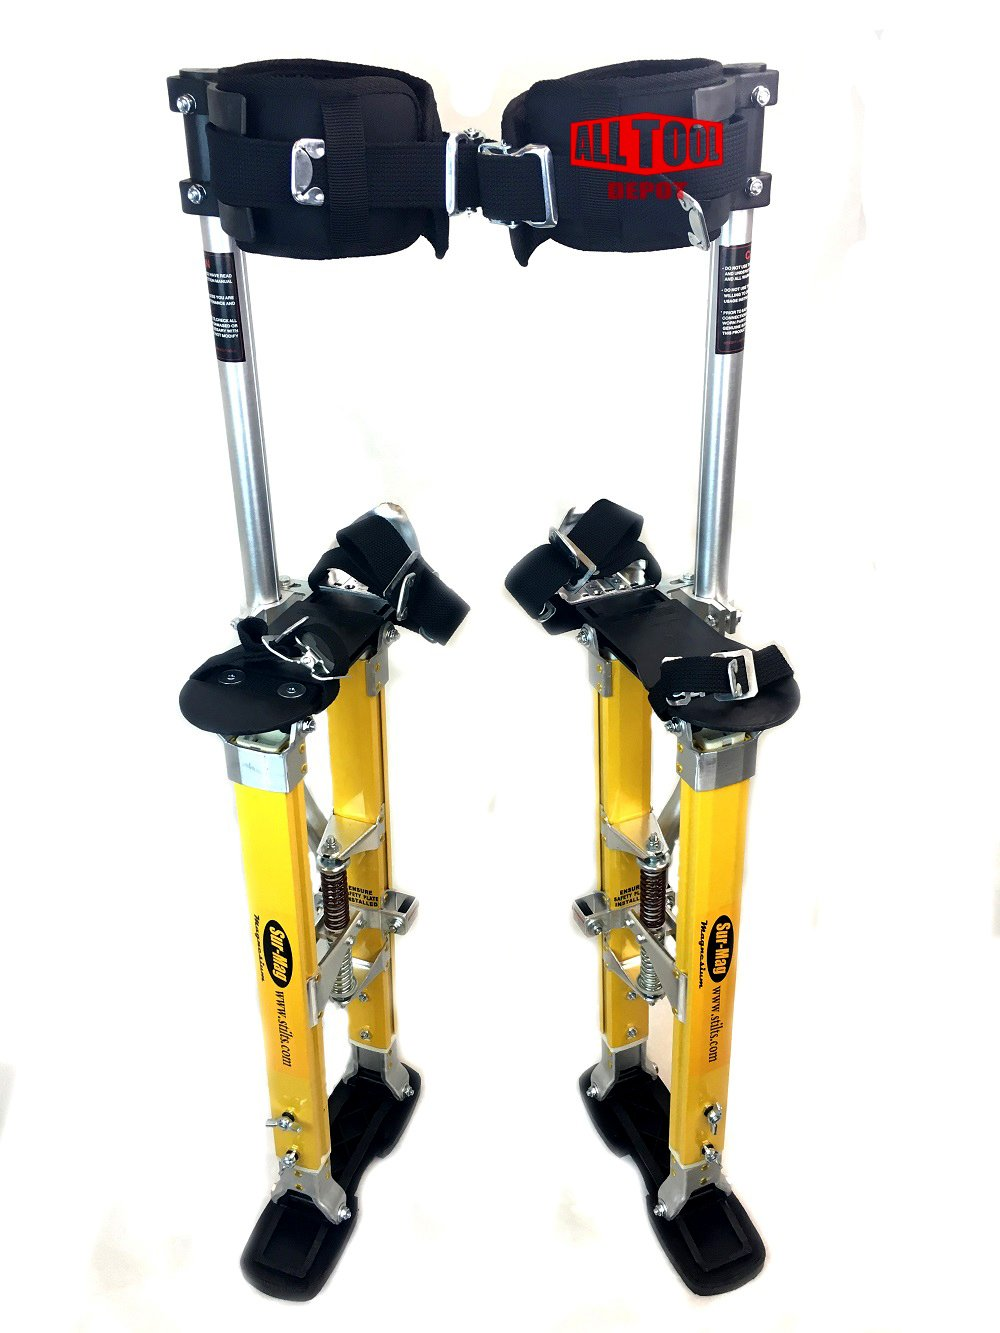 SurPro Interlok Magnesium Drywall Stilts 24-40 in. (SUR-SS-2440MP)